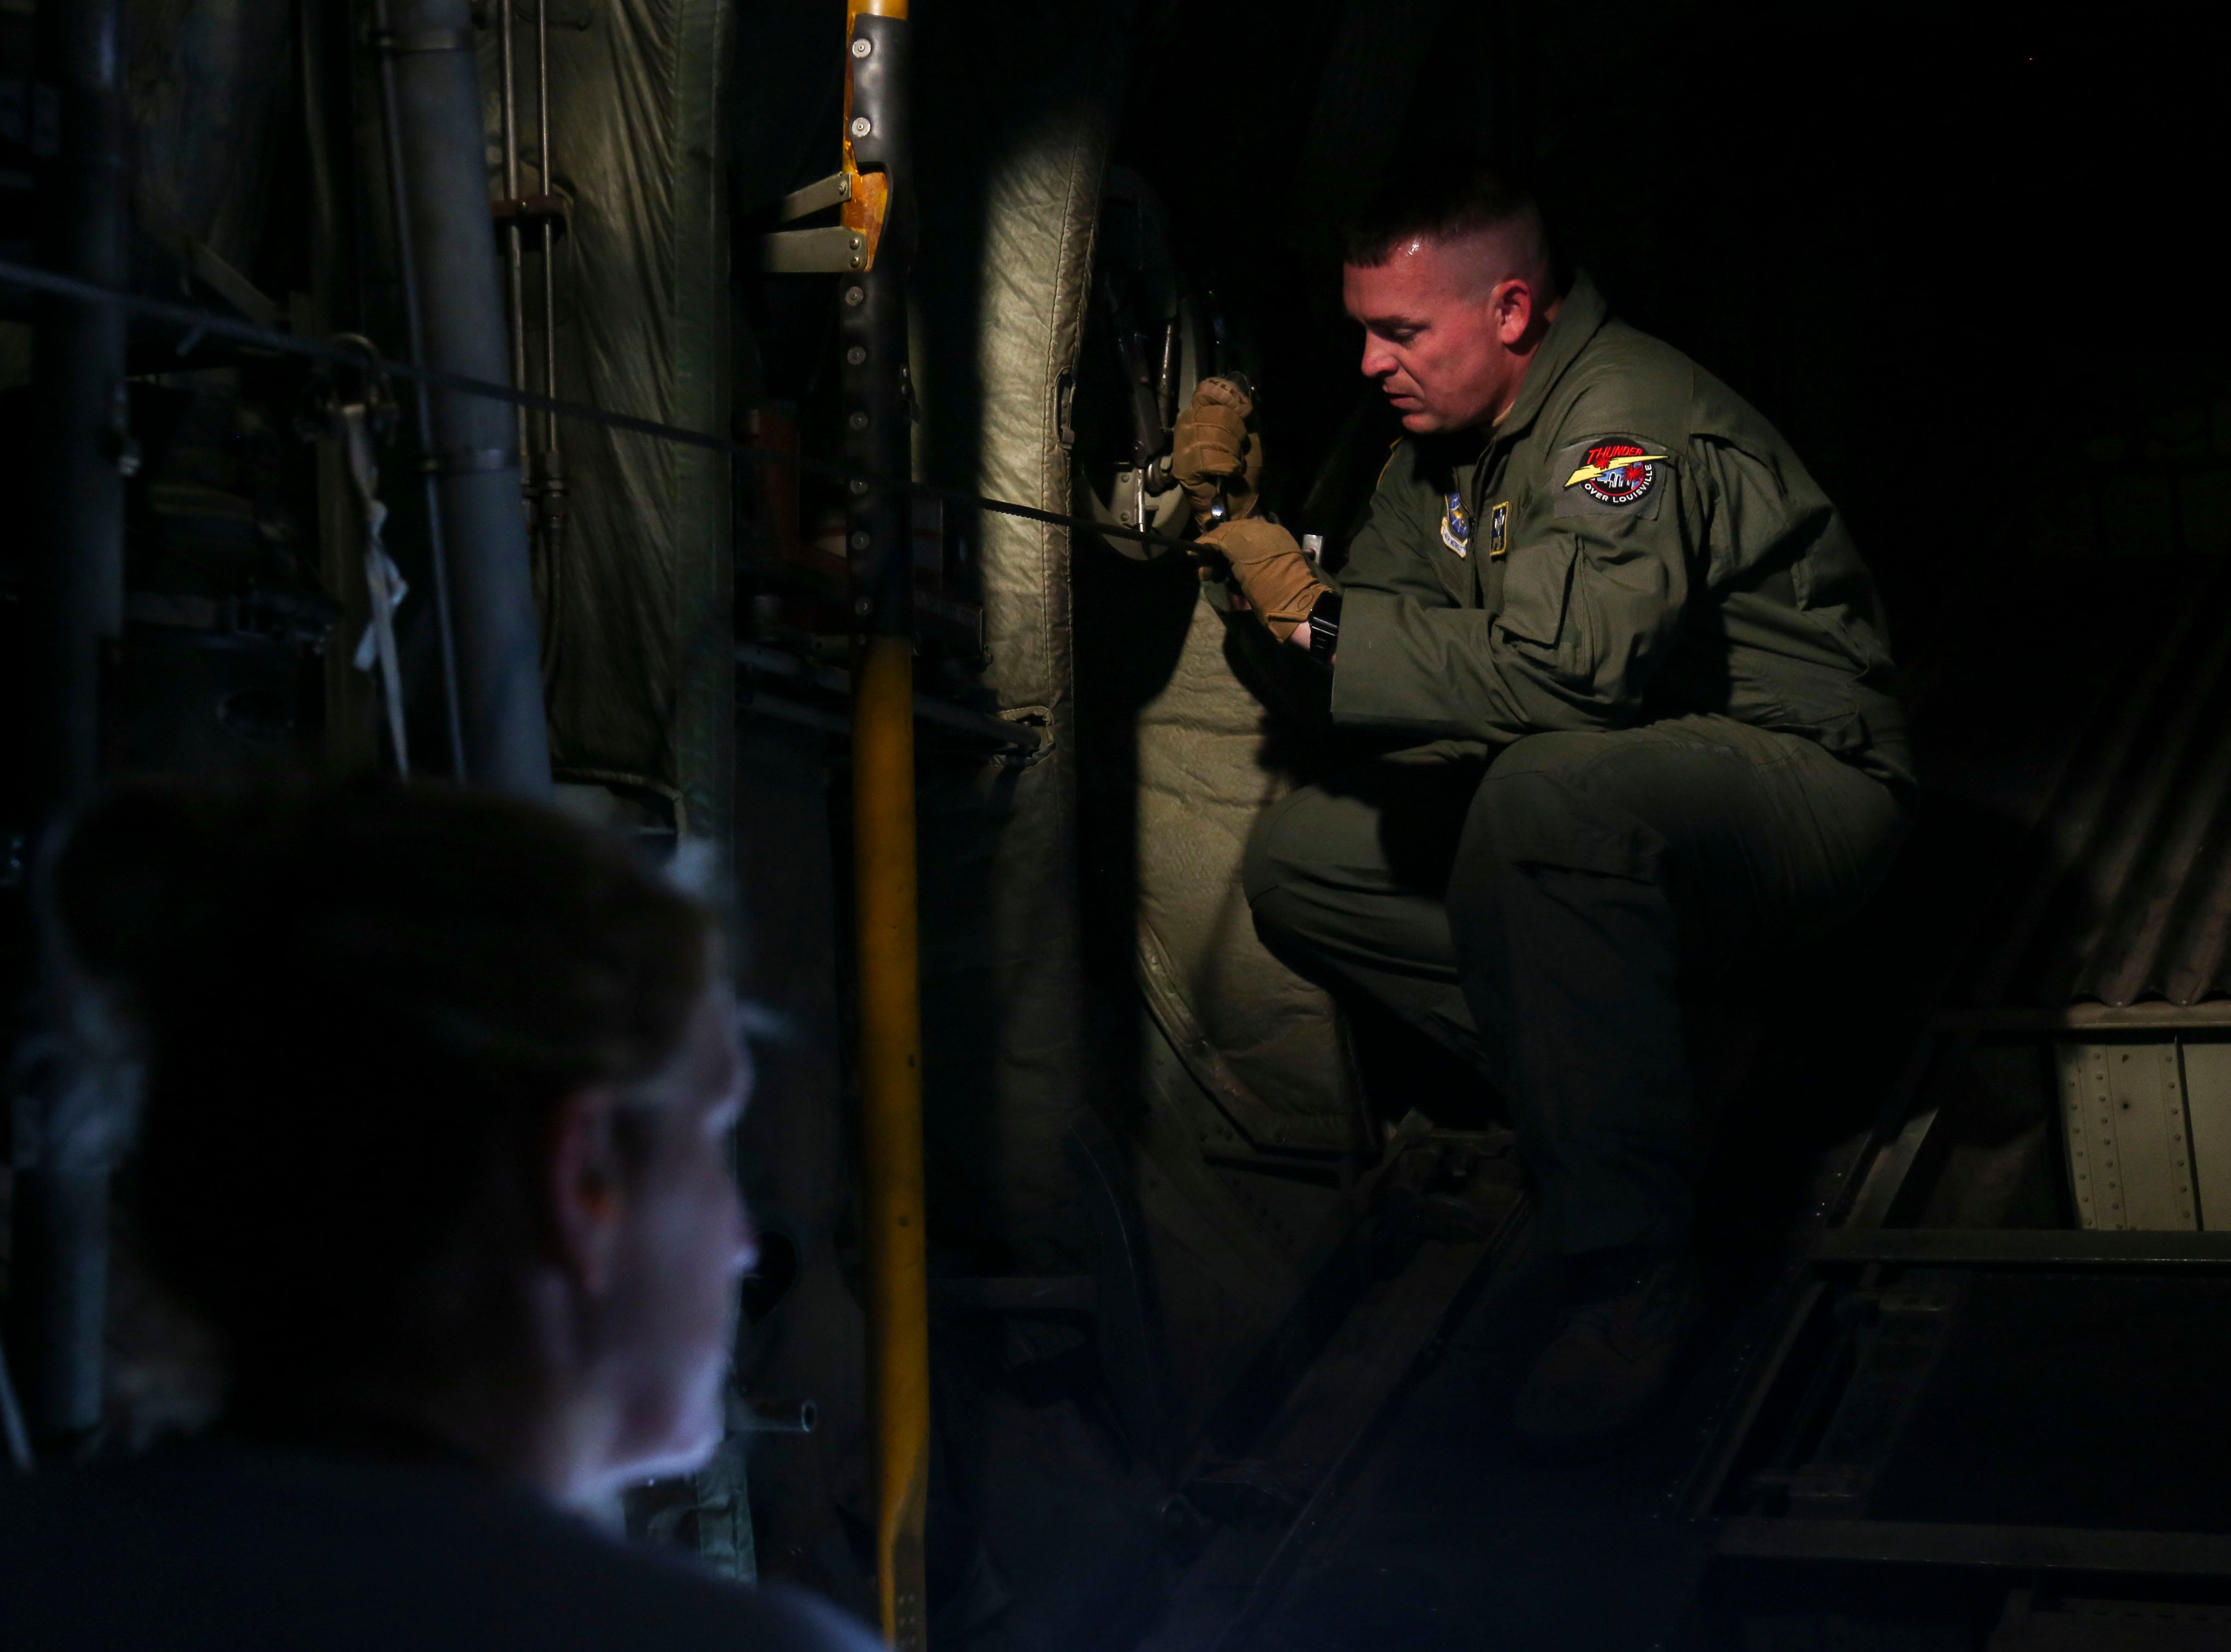 Master Sargent Drew Poynter, left, and Senior Master Sergeant Cynthia Benskin, right, prepare a C-130 Hercules, a four-engine, turboprop military transport aircraft, at the Kentucky Air National Guard ahead of practice for Thunder Over Louisville in Louisville, Ky. on Friday, April 12, 2019.